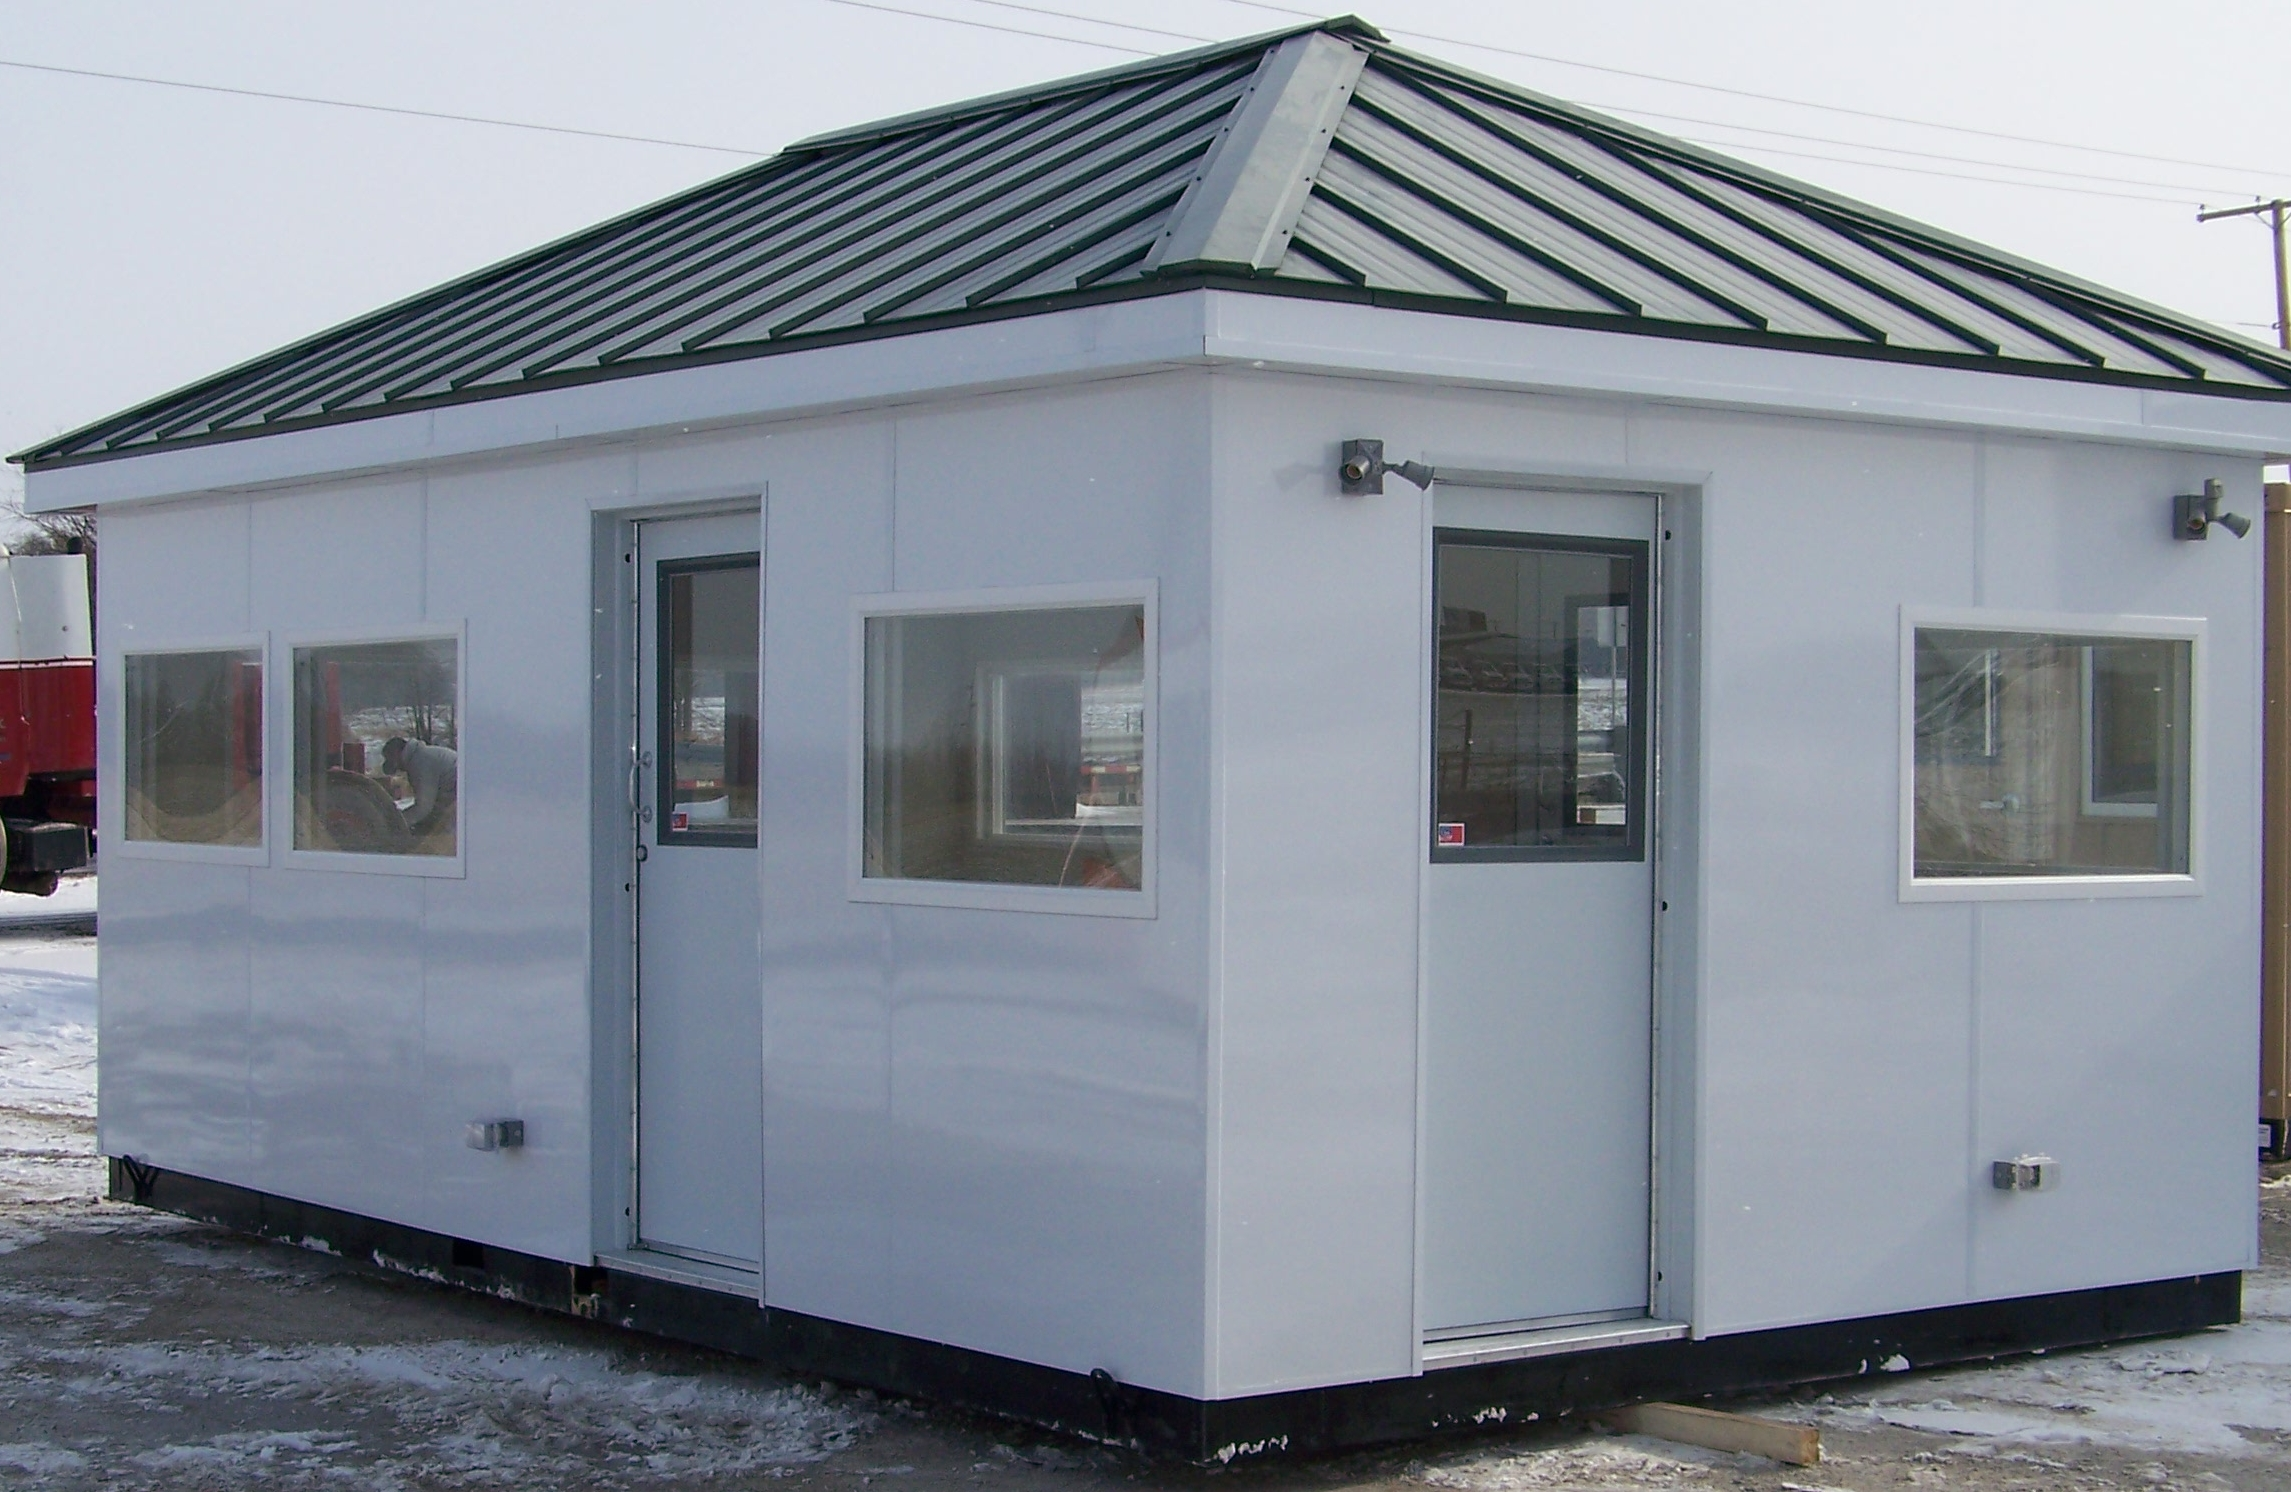 Prefabricated Booths Guard Shacks Equipment Shelters Control Rooms #5C3736